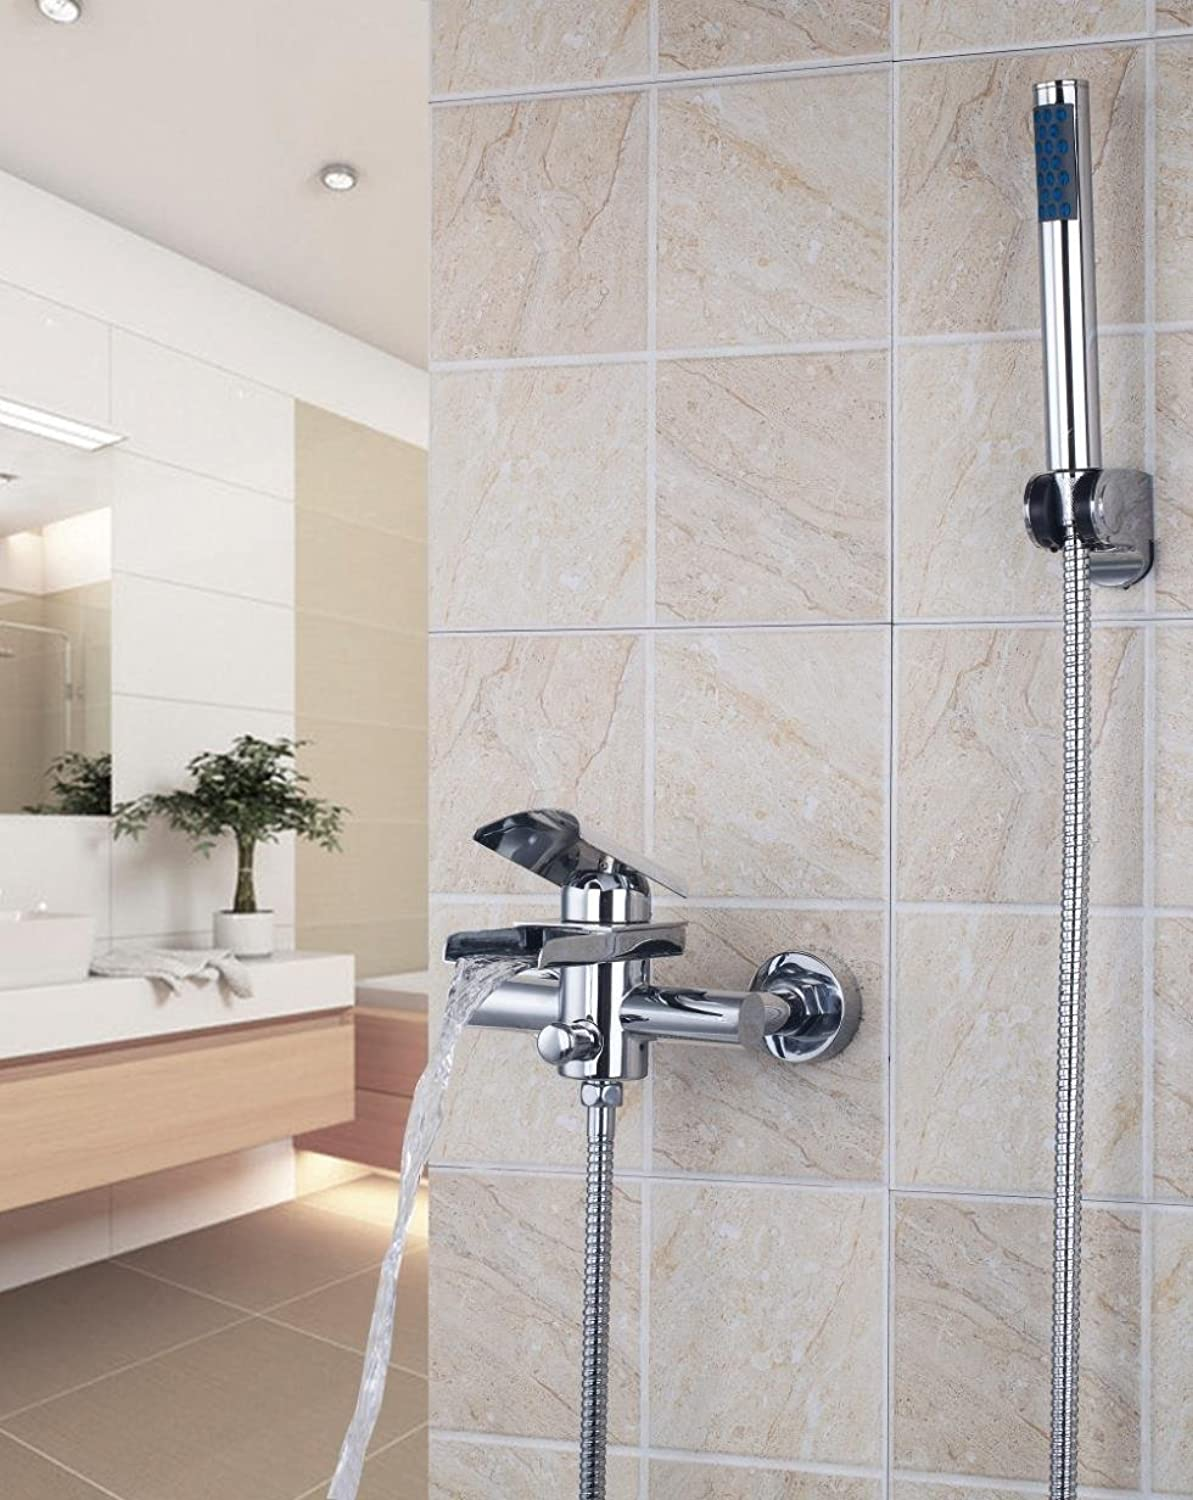 Width massively Brass Waterfall Faucet to The Wall Assembled with Hand-held Shower Faucet Mixer Dual Control Design Tiles